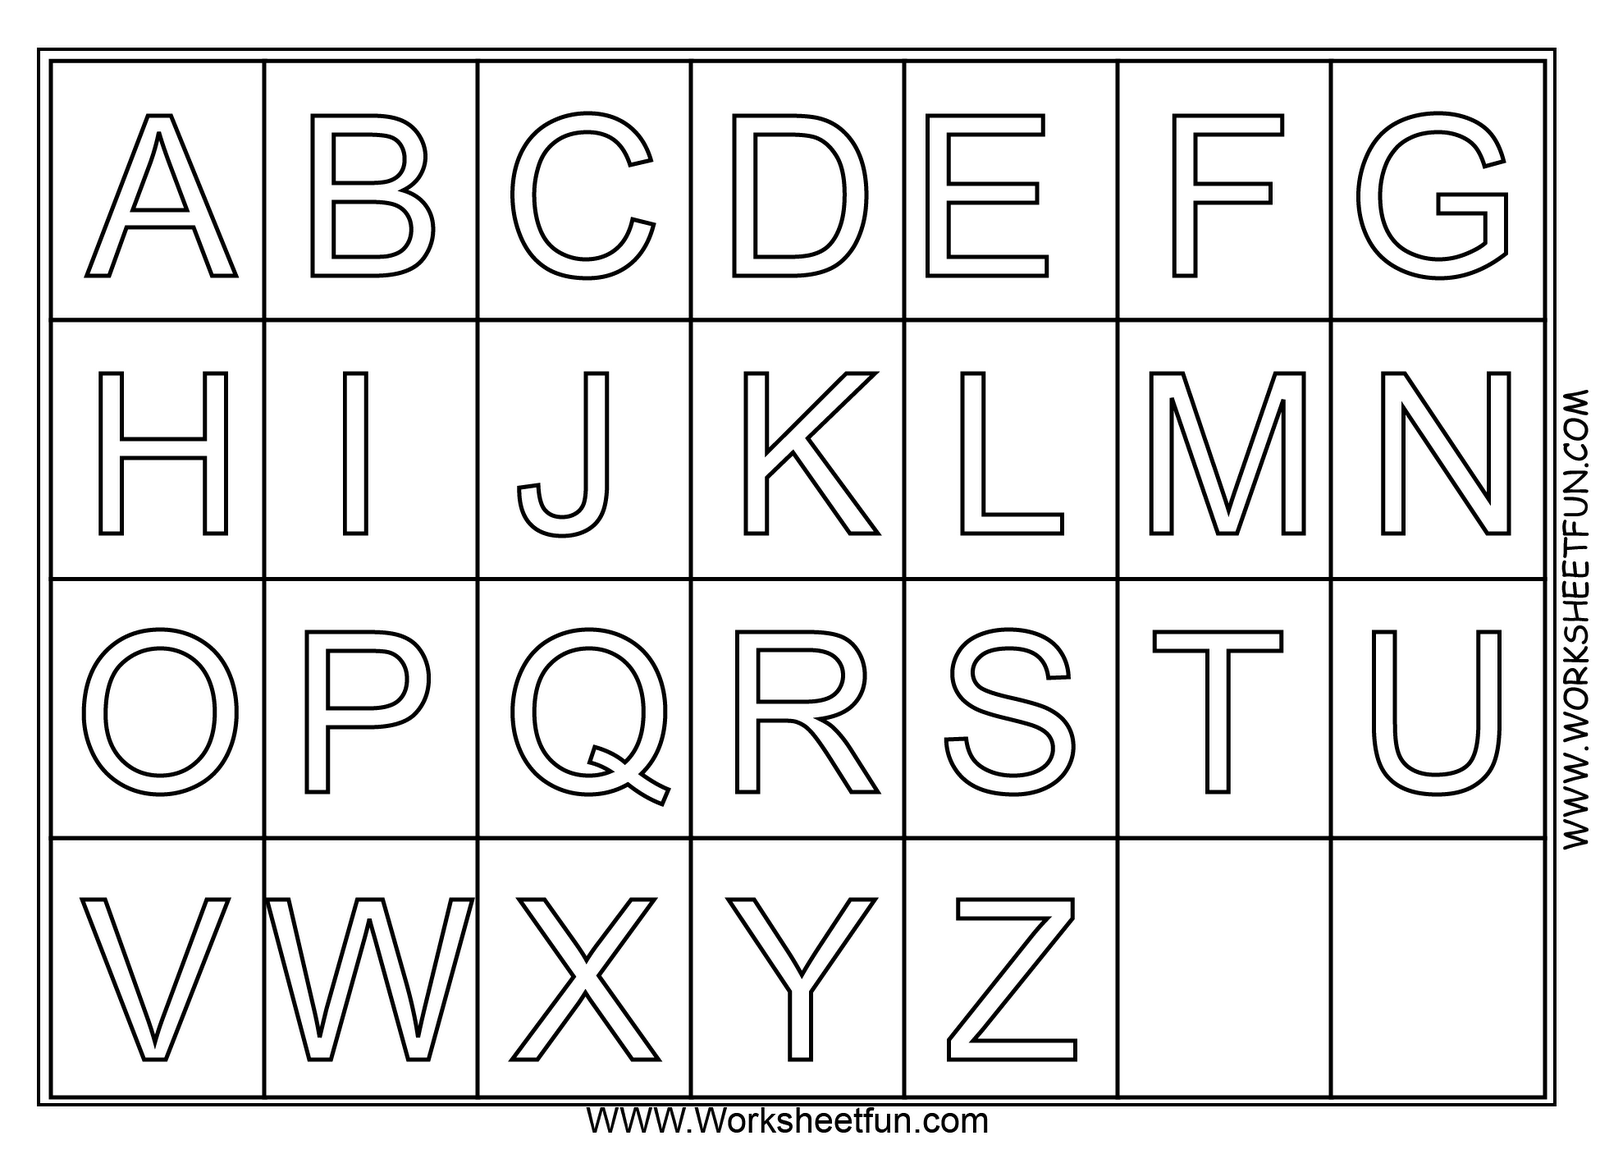 A z alphabet coloring pages download and print for free – Alphabet Worksheets Free